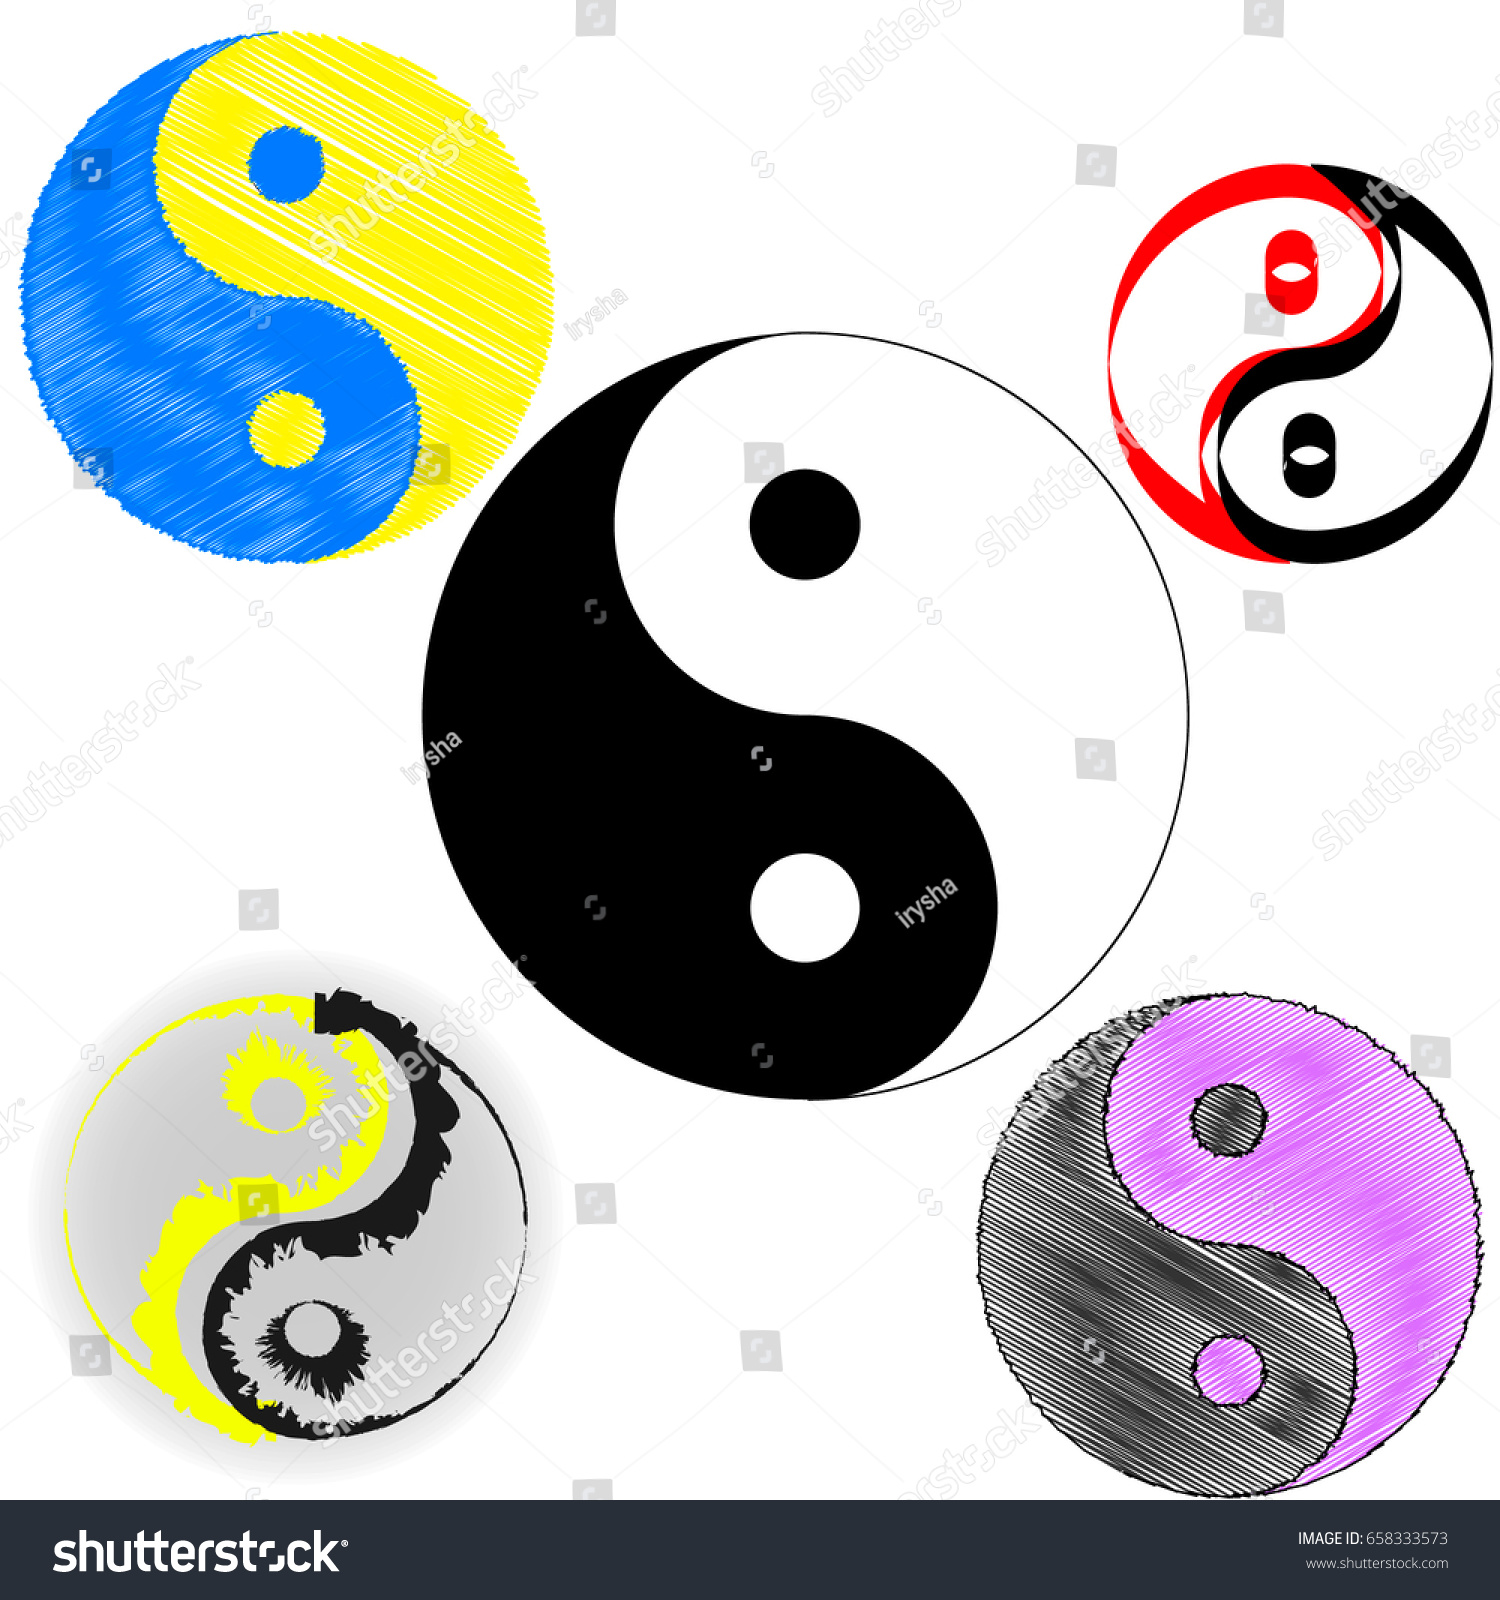 Sign chinese philosophy symbol confucianism icons stock vector sign of chinese philosophy of the symbol of confucianism icons symbolizing the unity of yin biocorpaavc Images